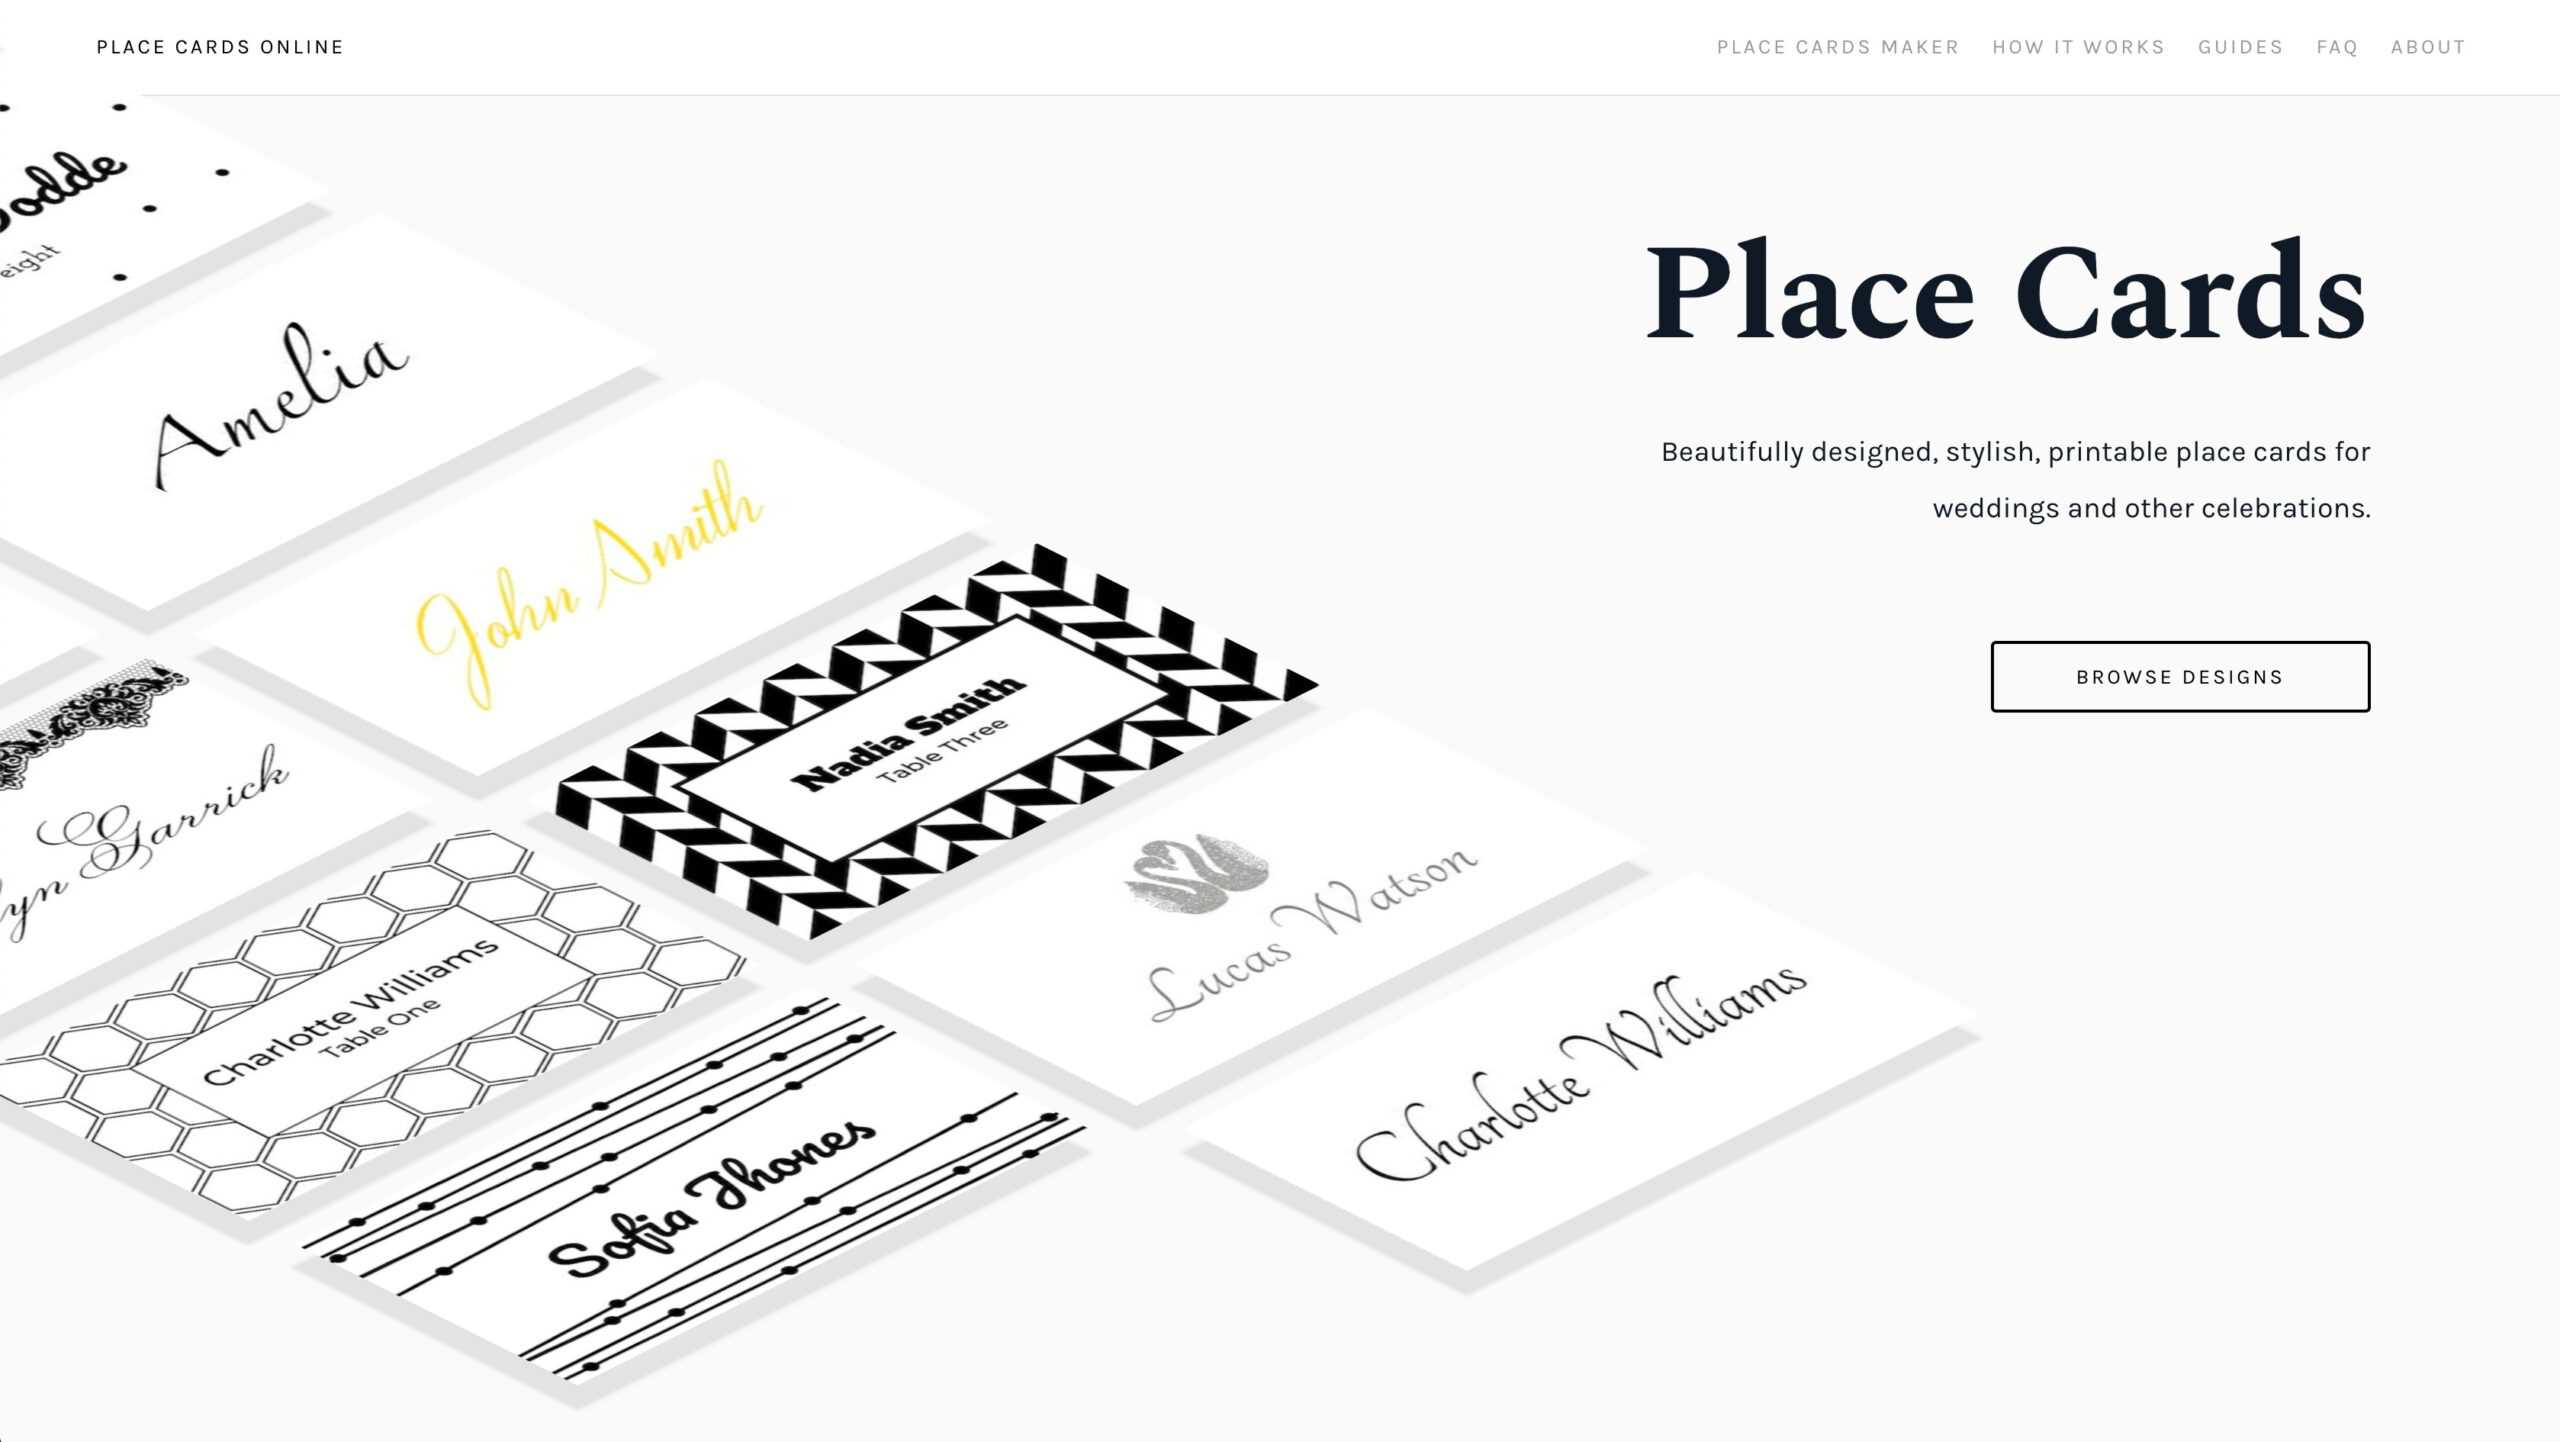 Place Cards Online - Place Cards Maker. Beautifully Designed Regarding Celebrate It Templates Place Cards